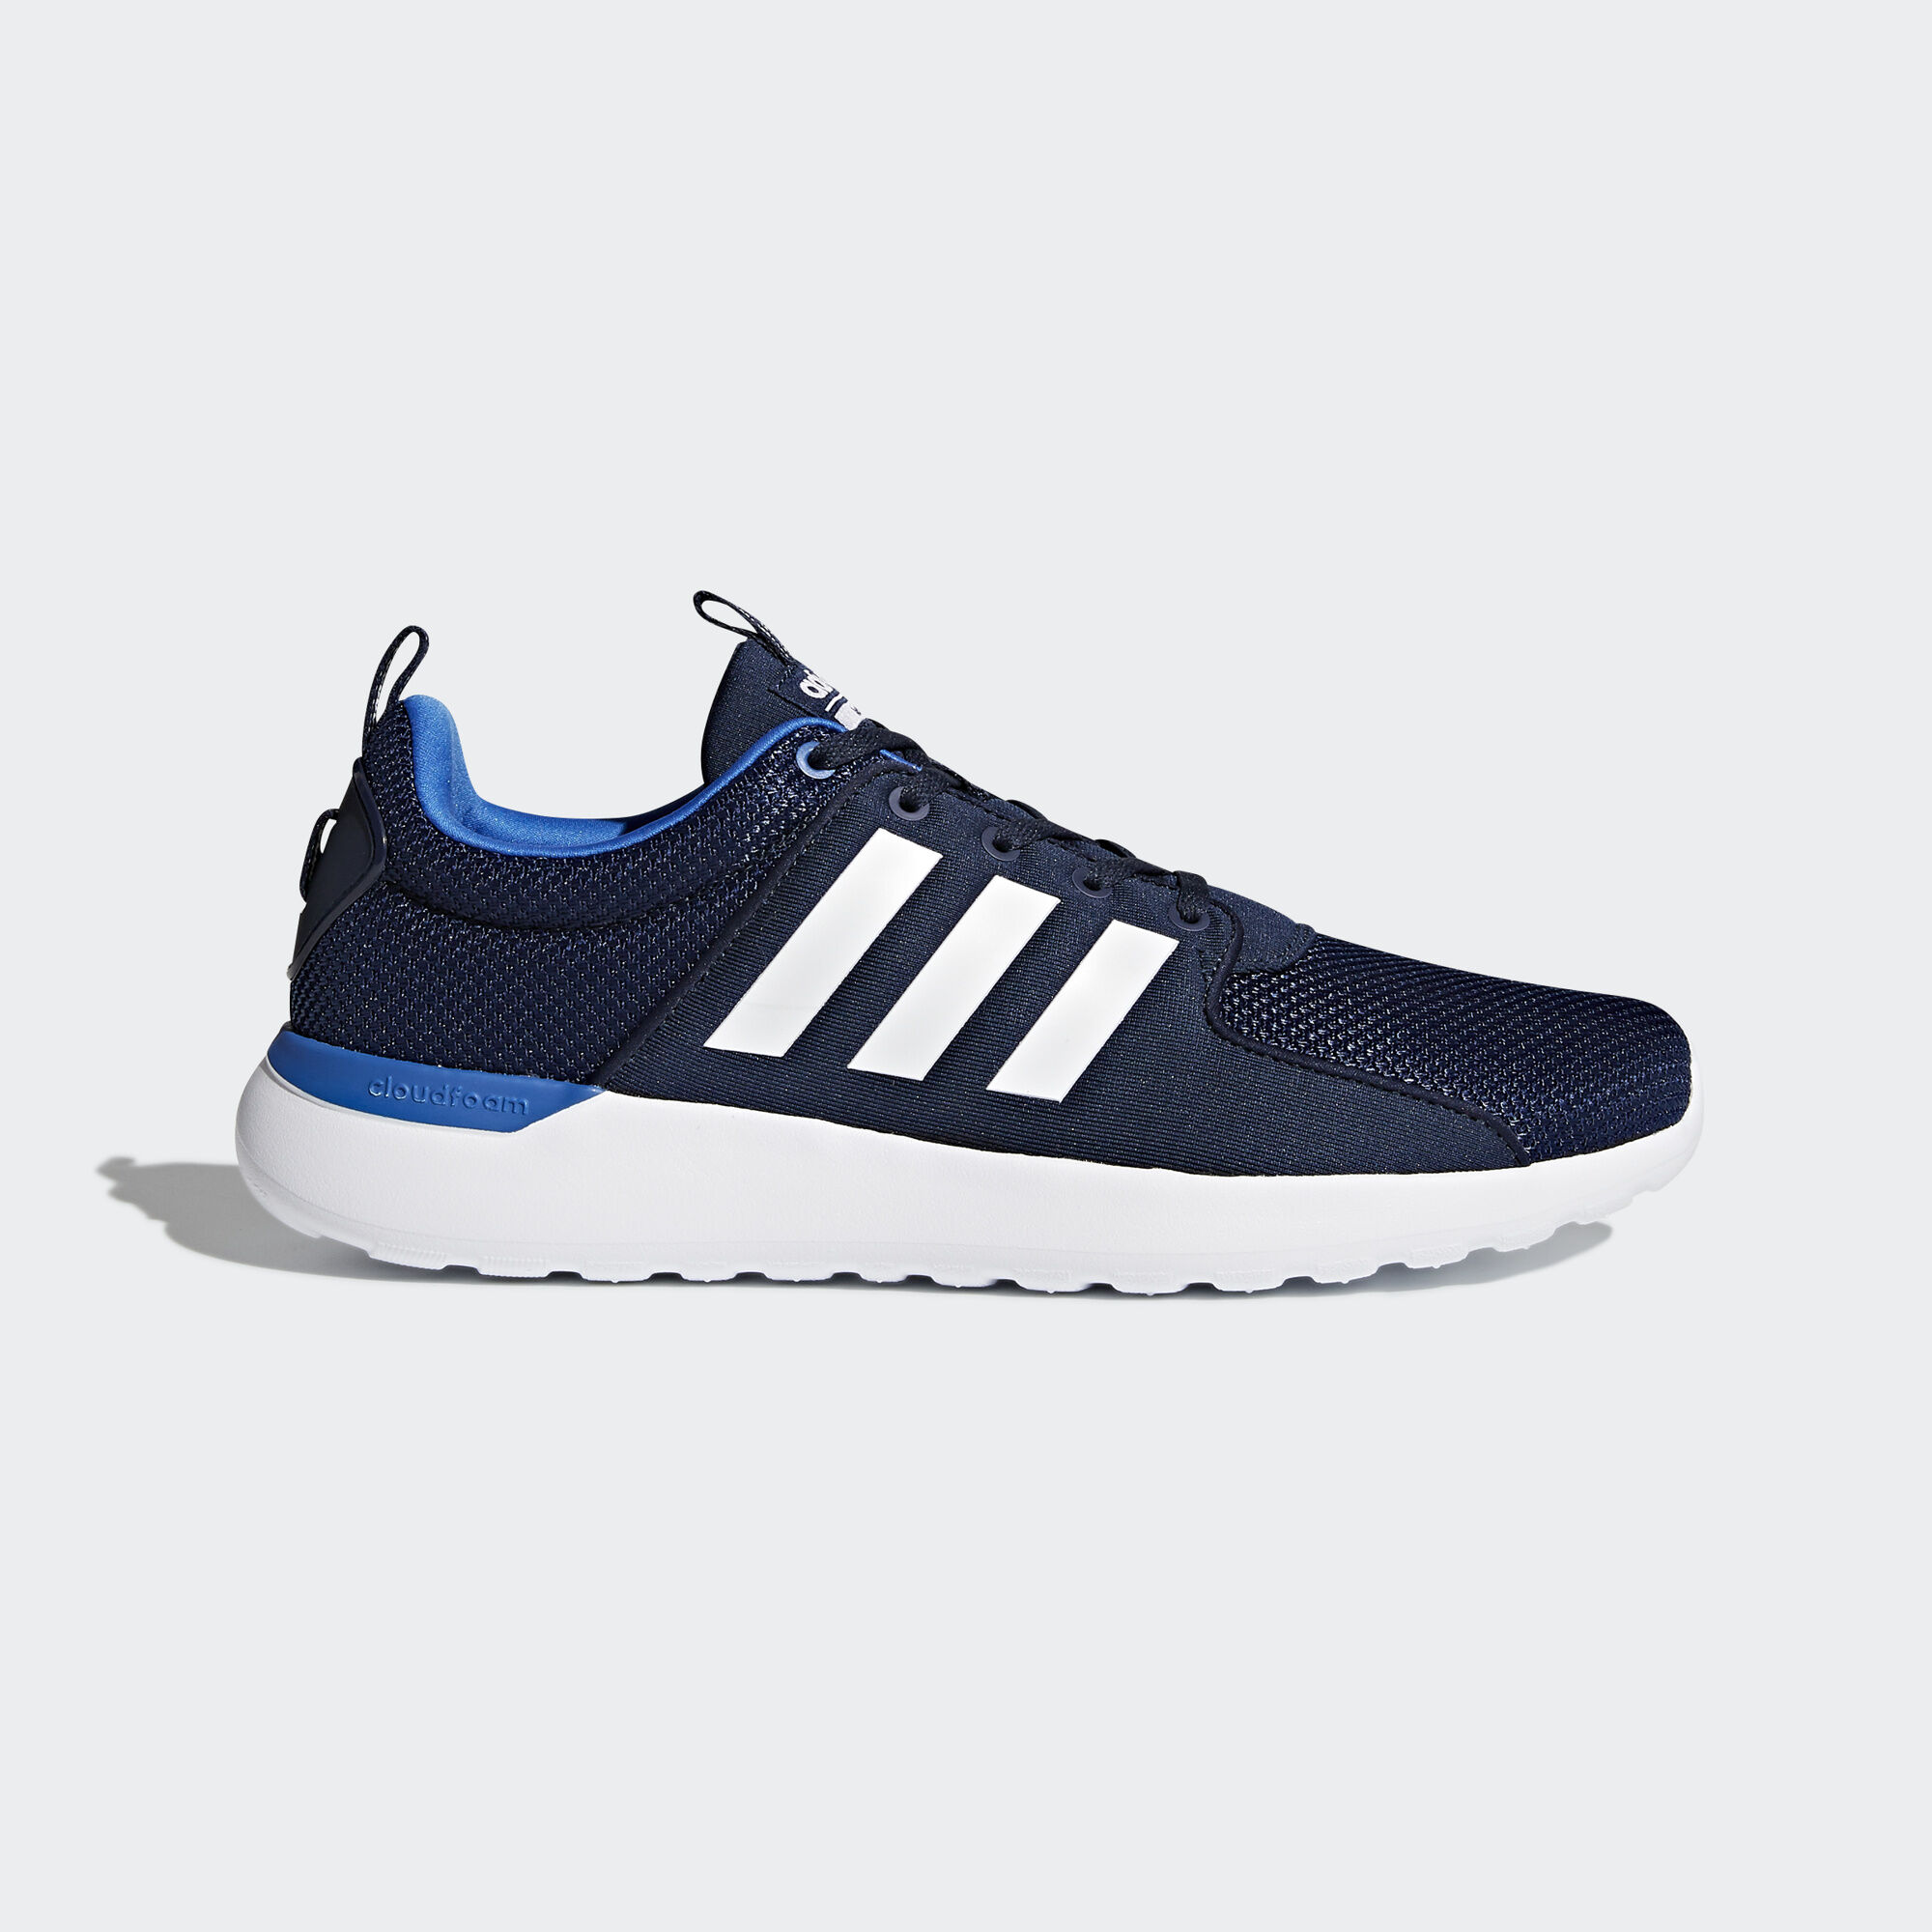 adidas - Cloudfoam Lite Racer Shoes Collegiate Navy / Running White / Blue  BB9821